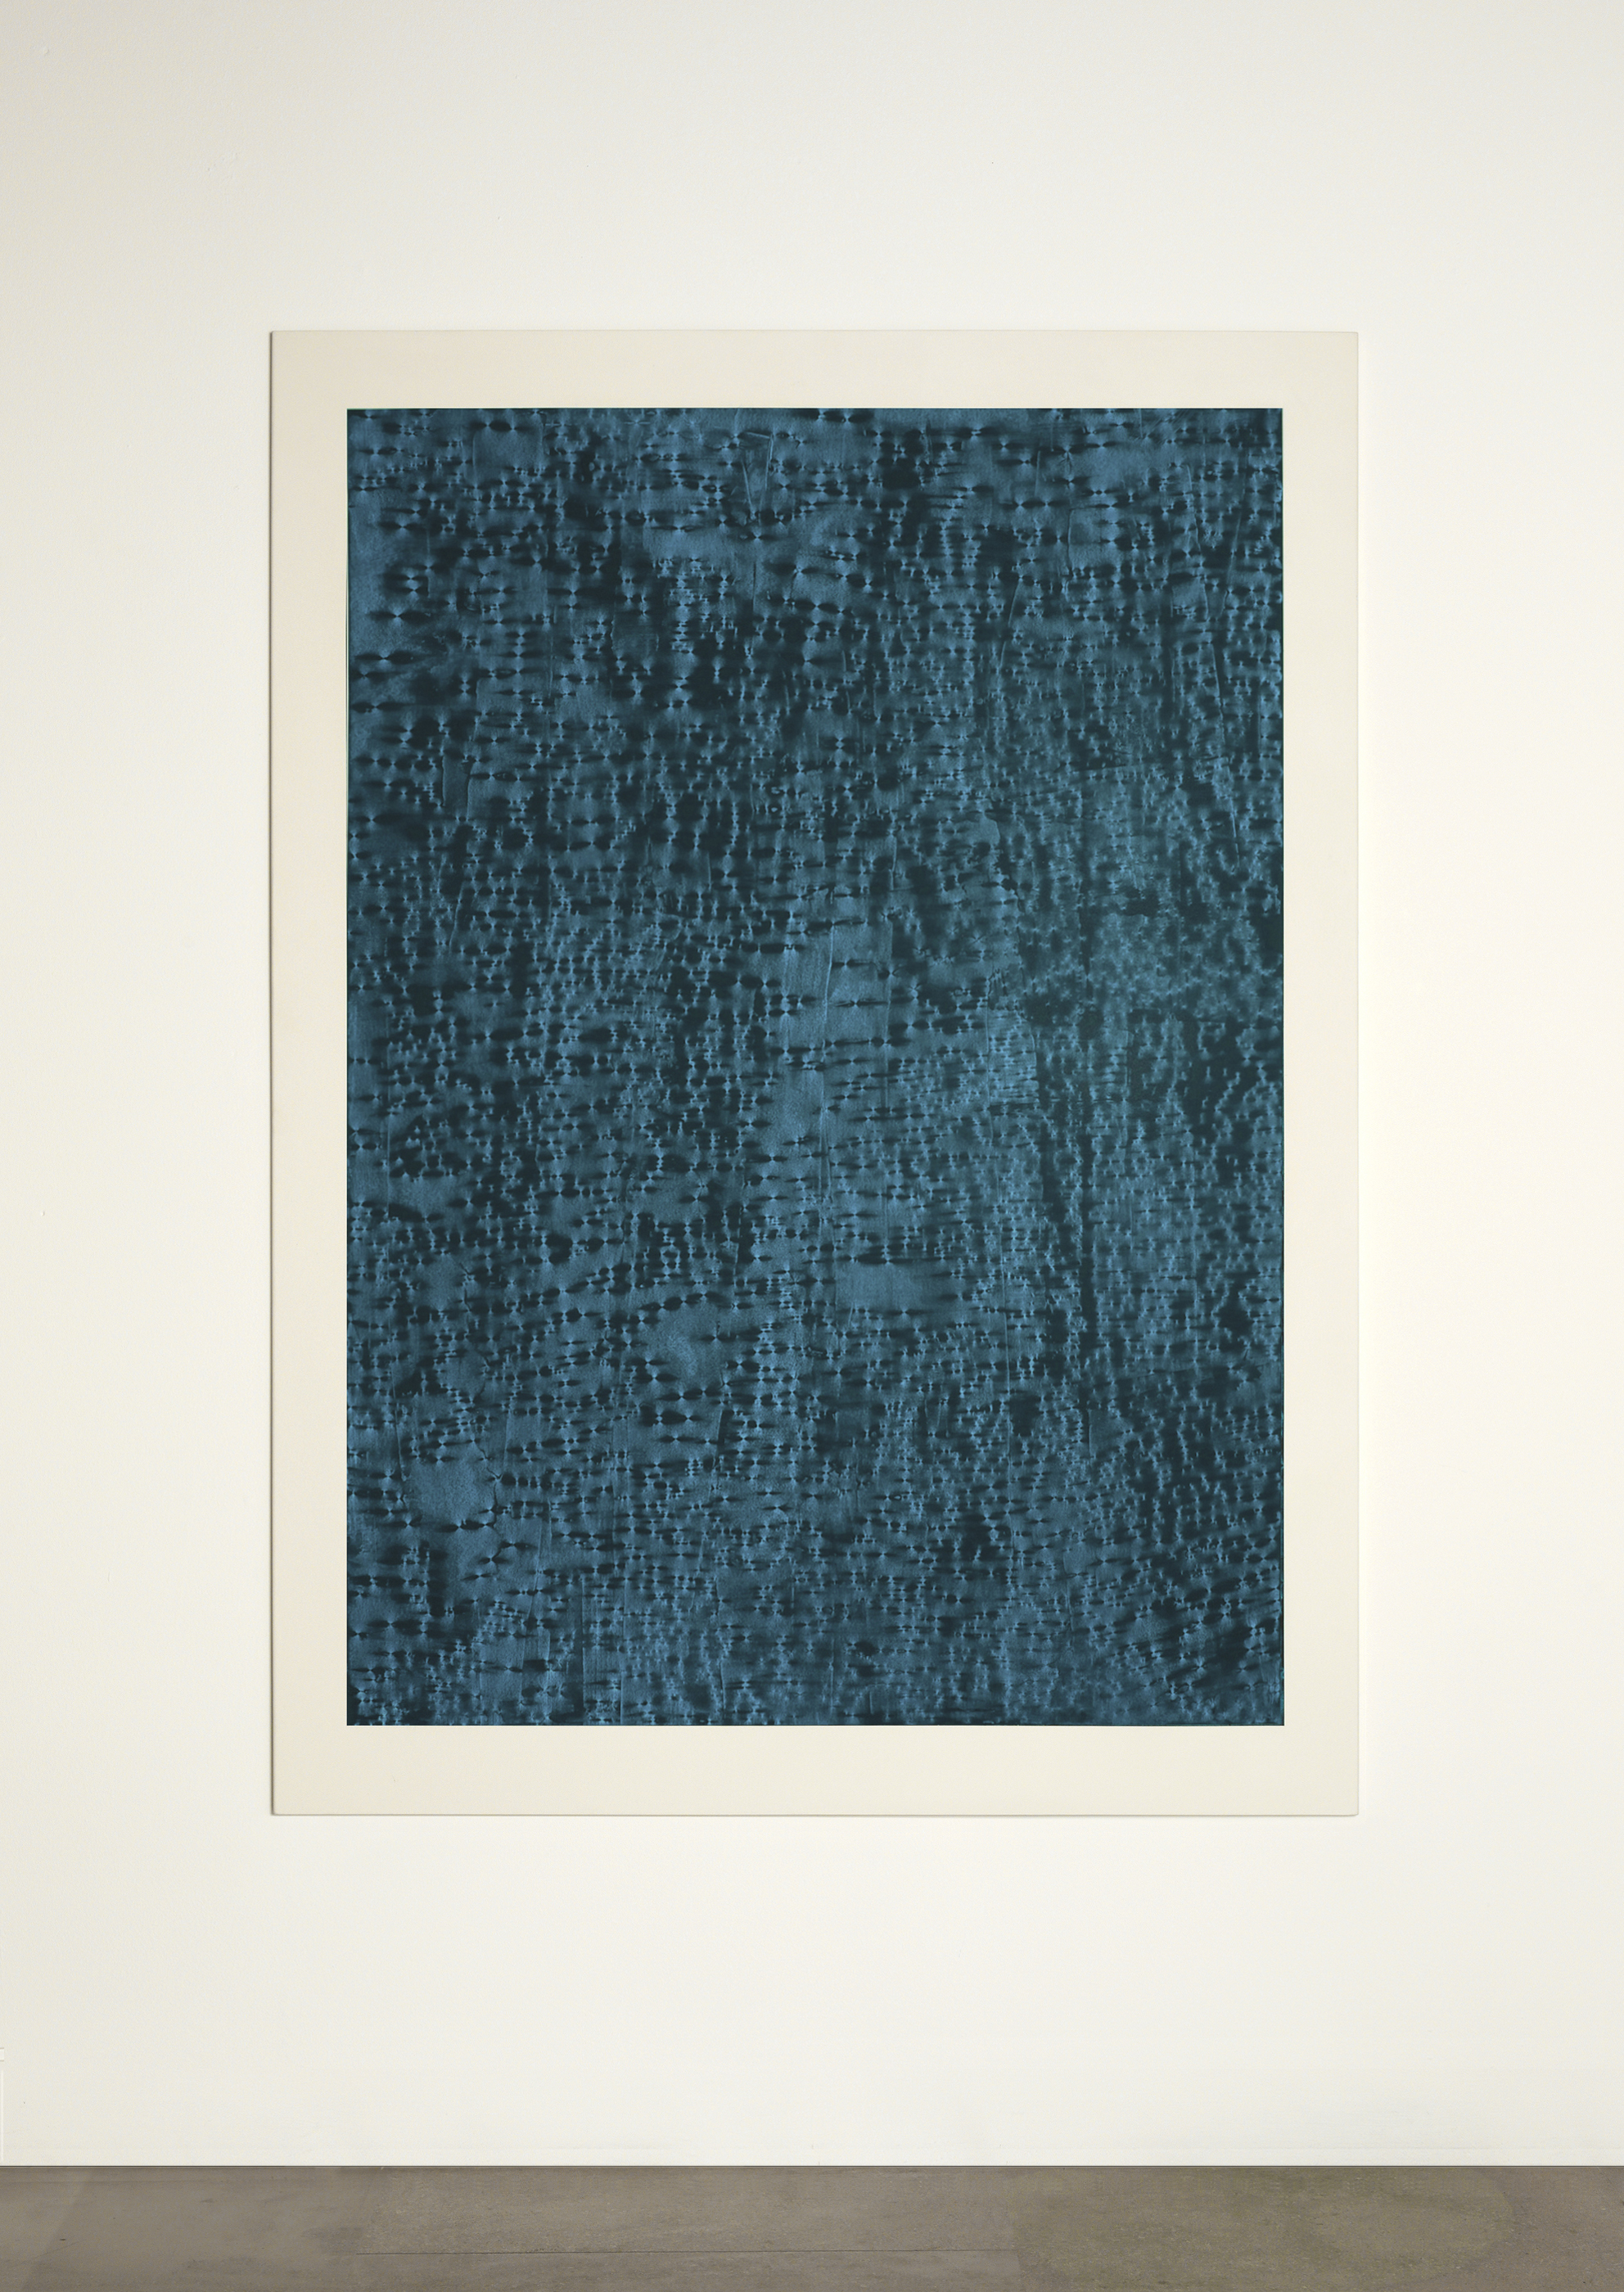 CONTINUOUS NOW – turquoise (II)  2012  pigment dispersal on 100% cotton fibre  147 x 108 cm